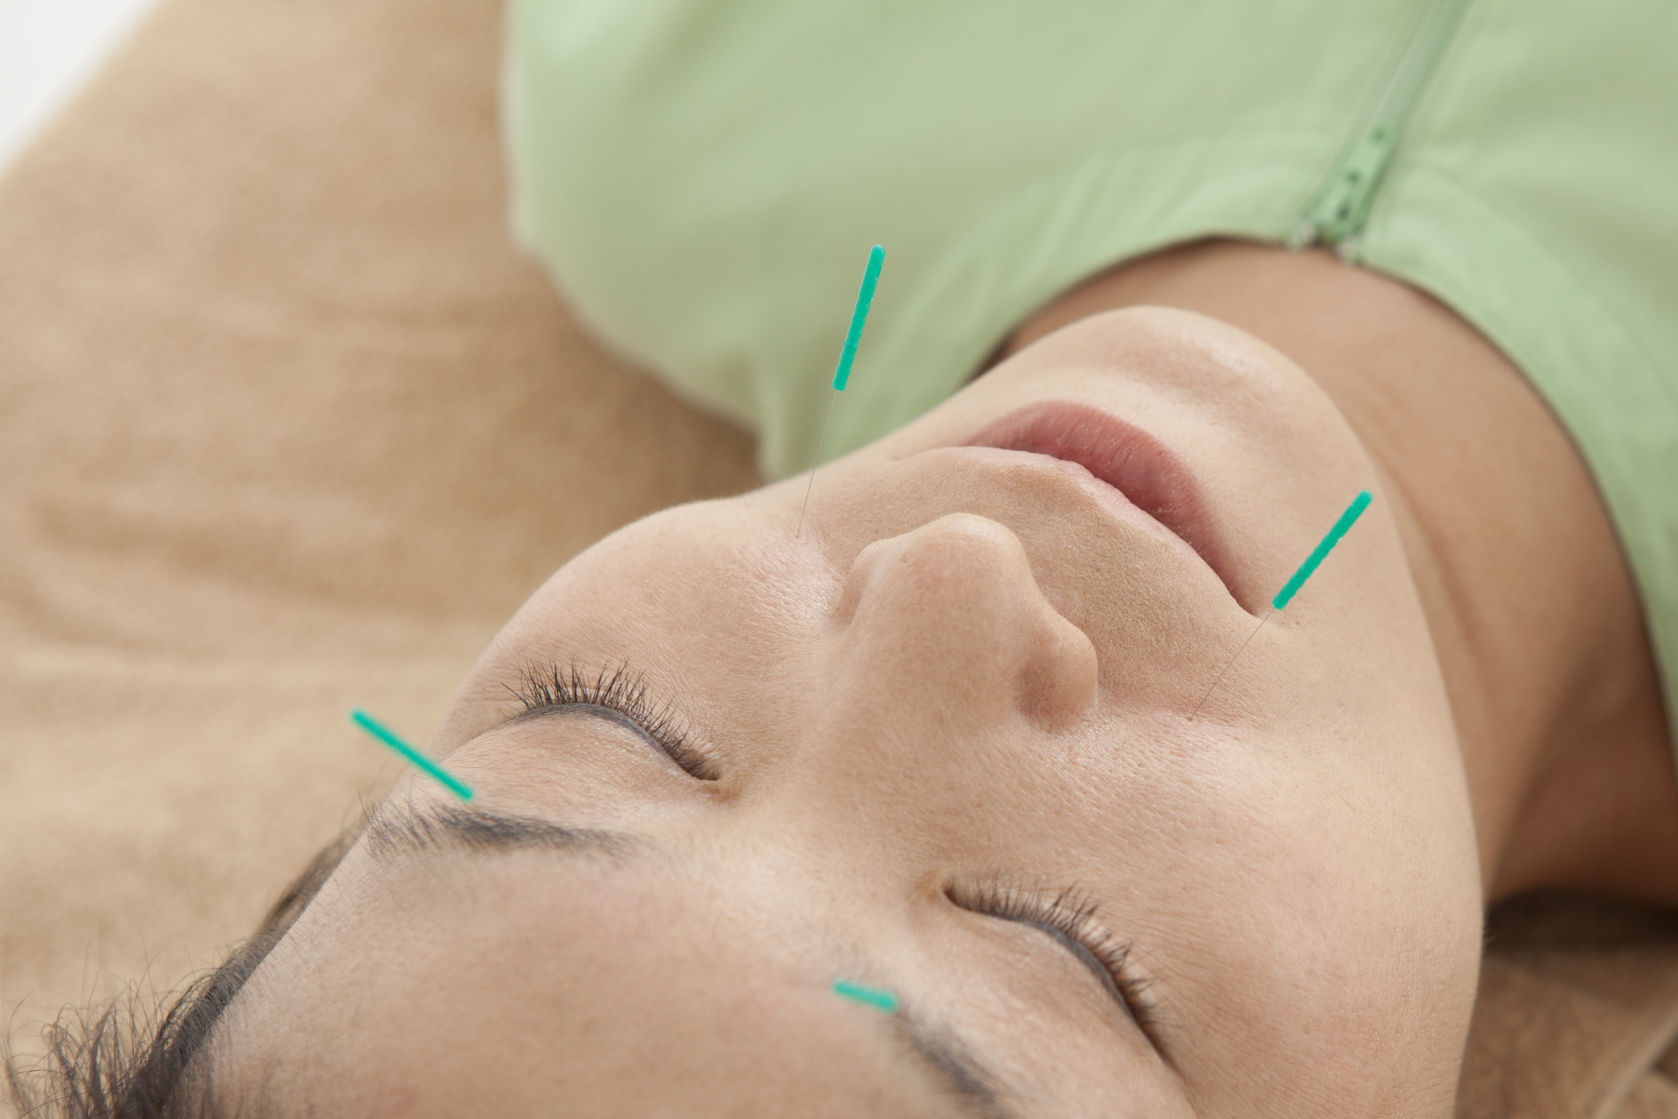 acupuncture helps neuropathy from diabetes HIV and carpal tunnel syndrome